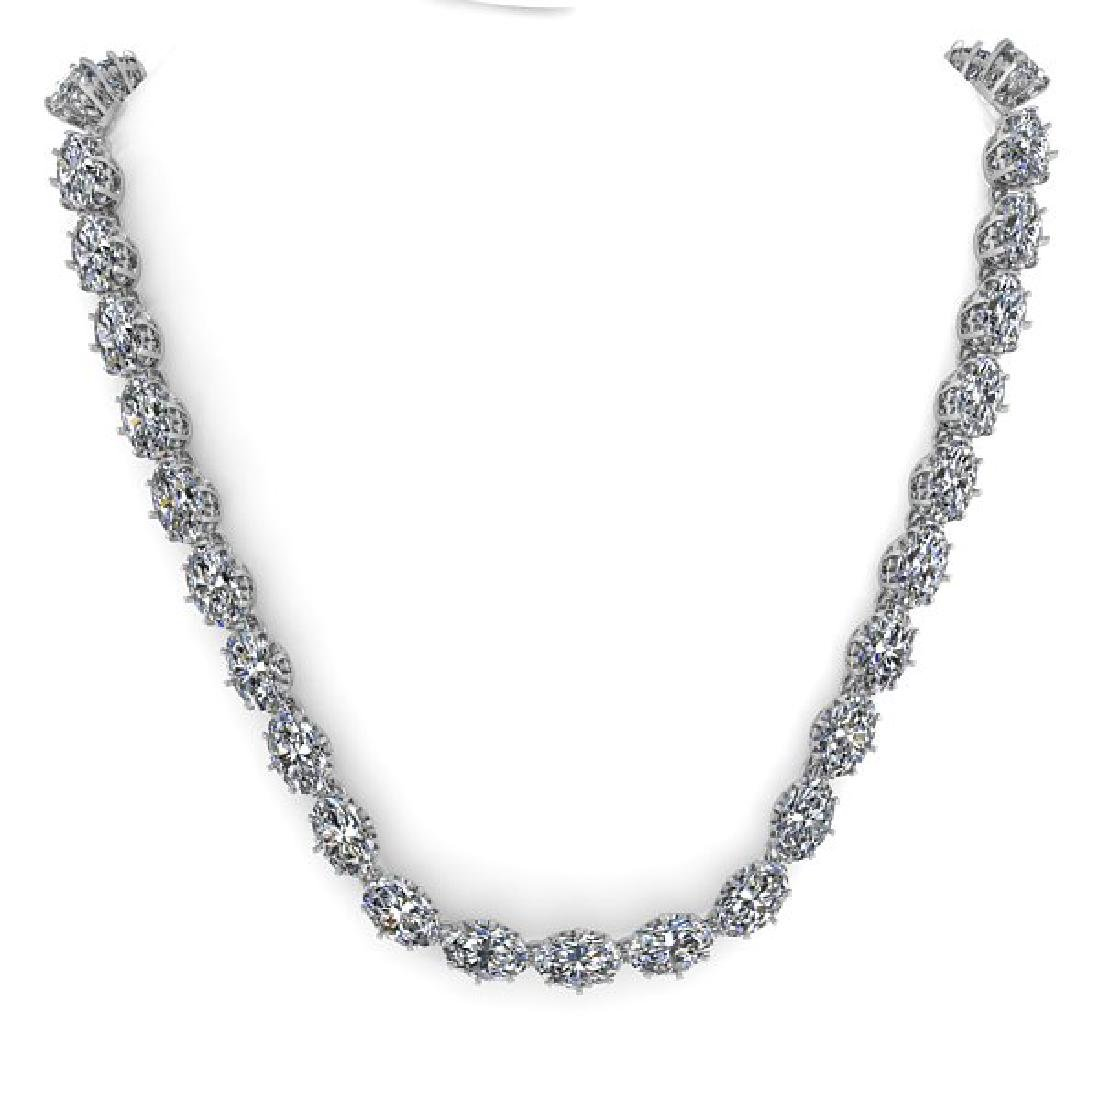 40 CTW Princess SI Certified Diamond Necklace 14K White - 3